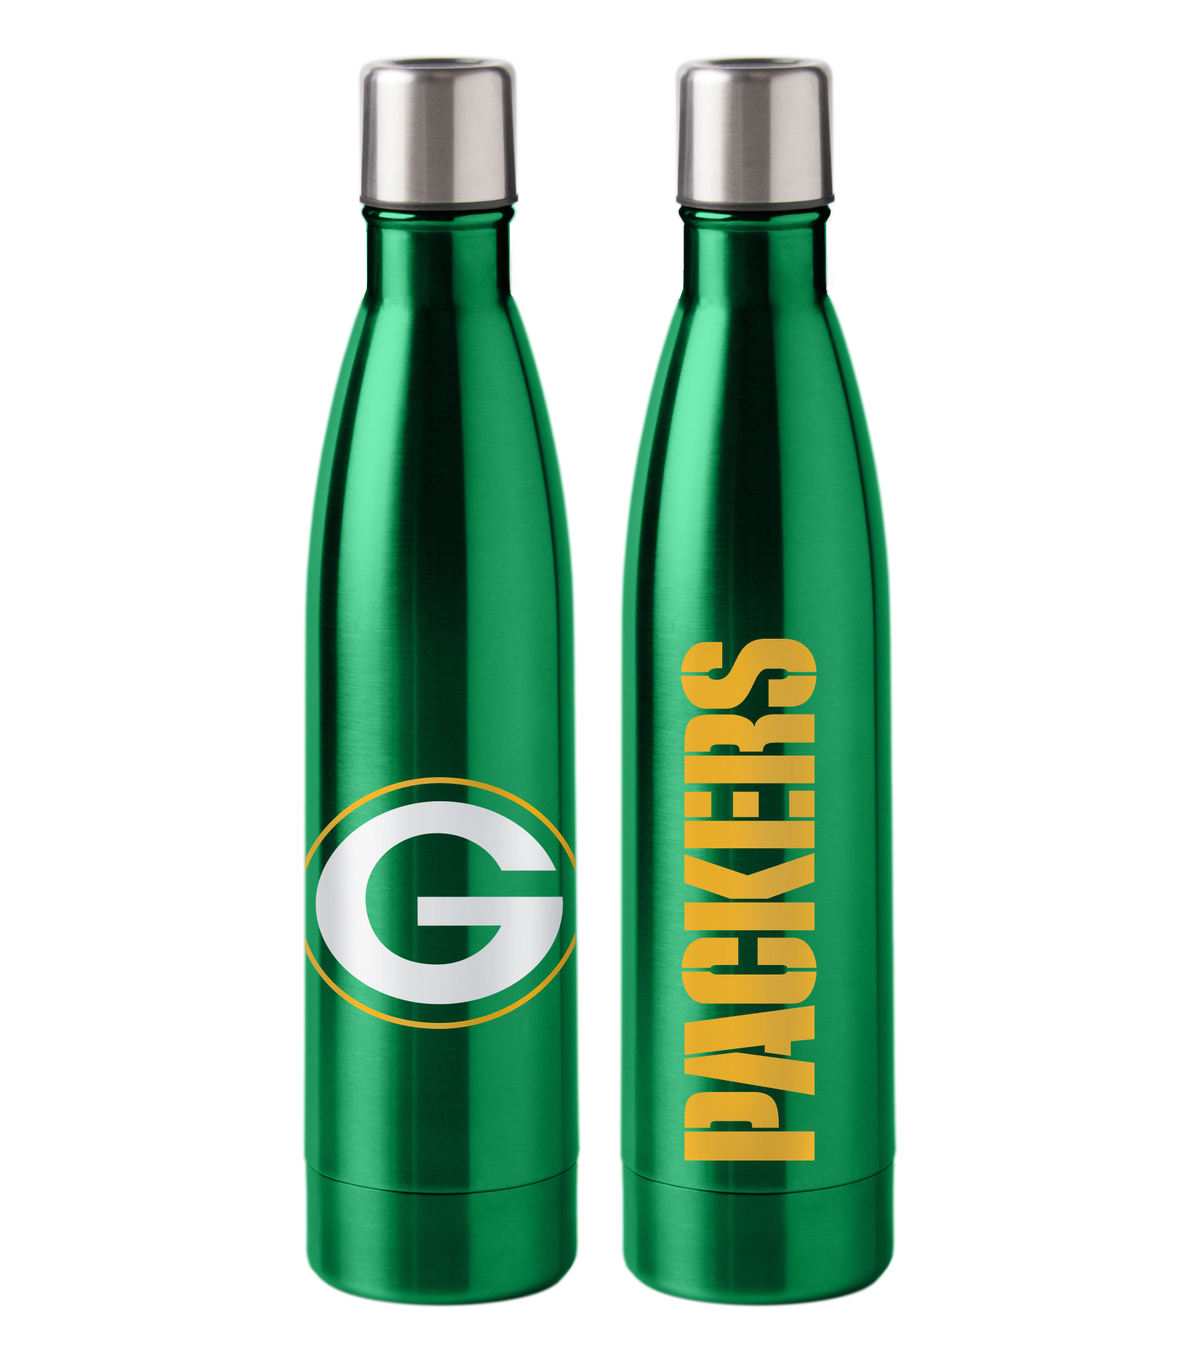 Green Bay Packers 18 oz Insulated Stainless Steel Water Bottle